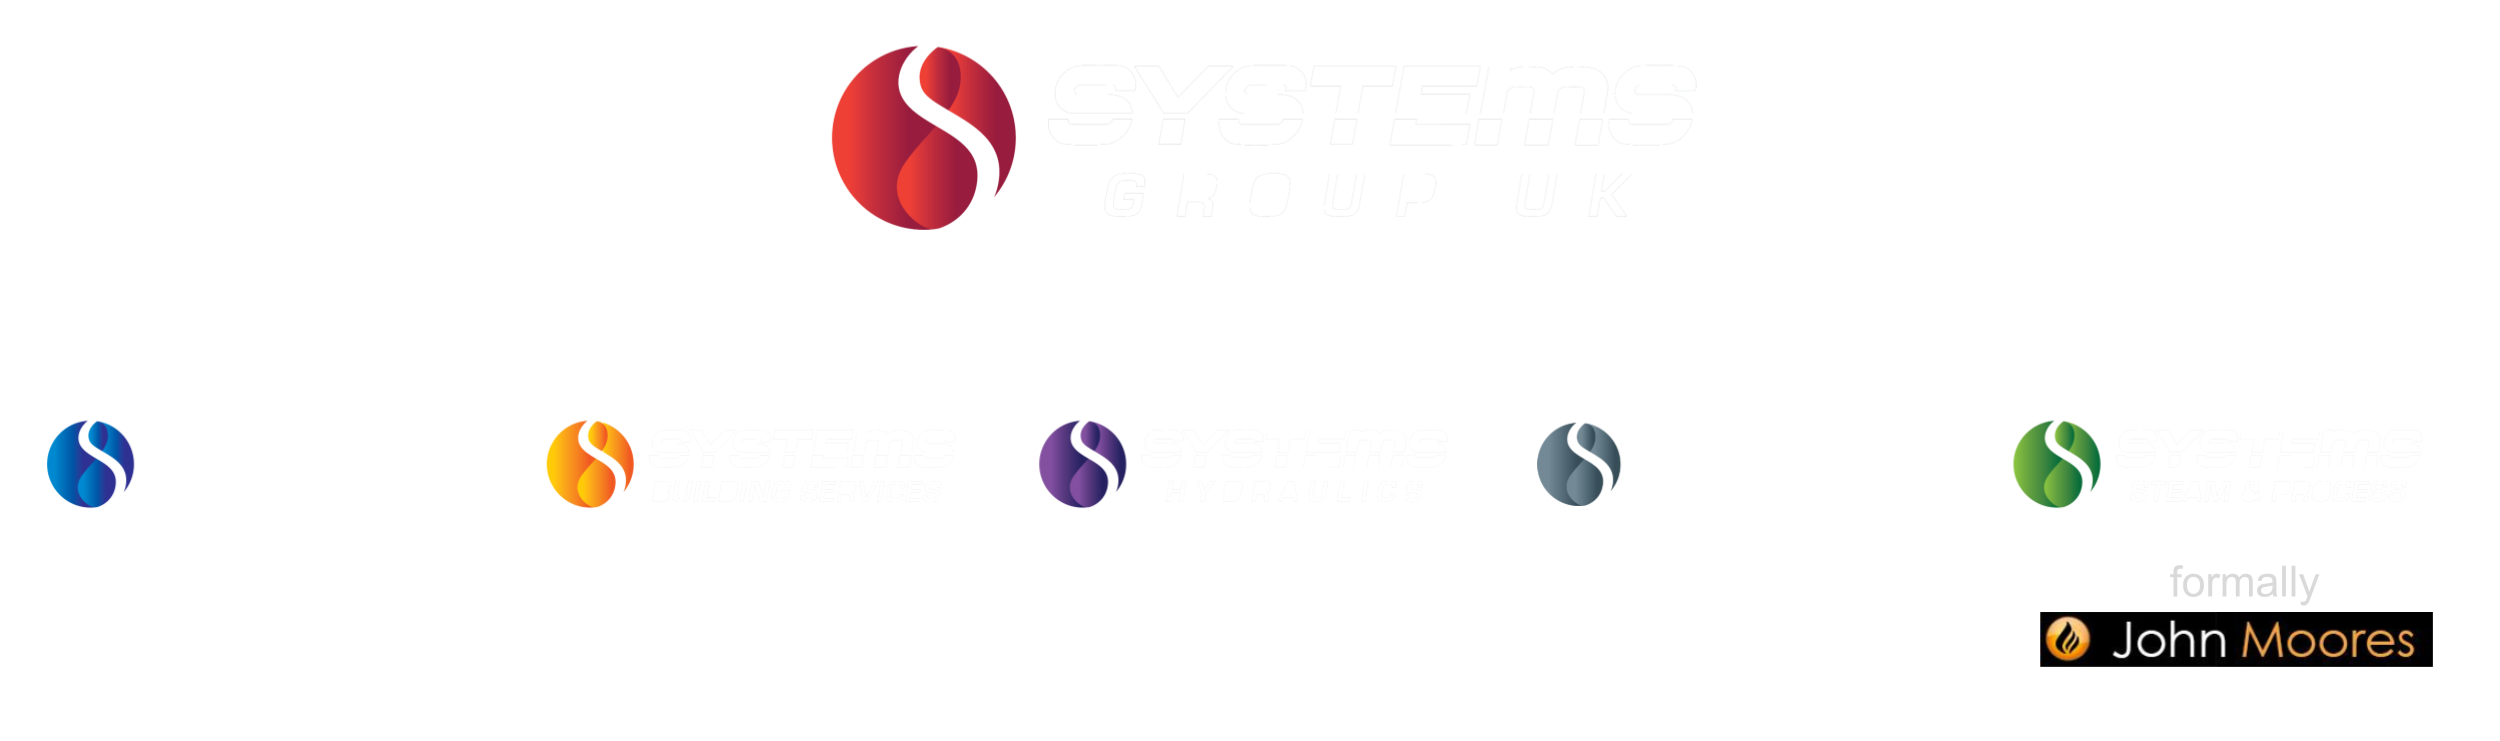 Systems Organisation - 2 - White - 2800px by 2000px-cropped